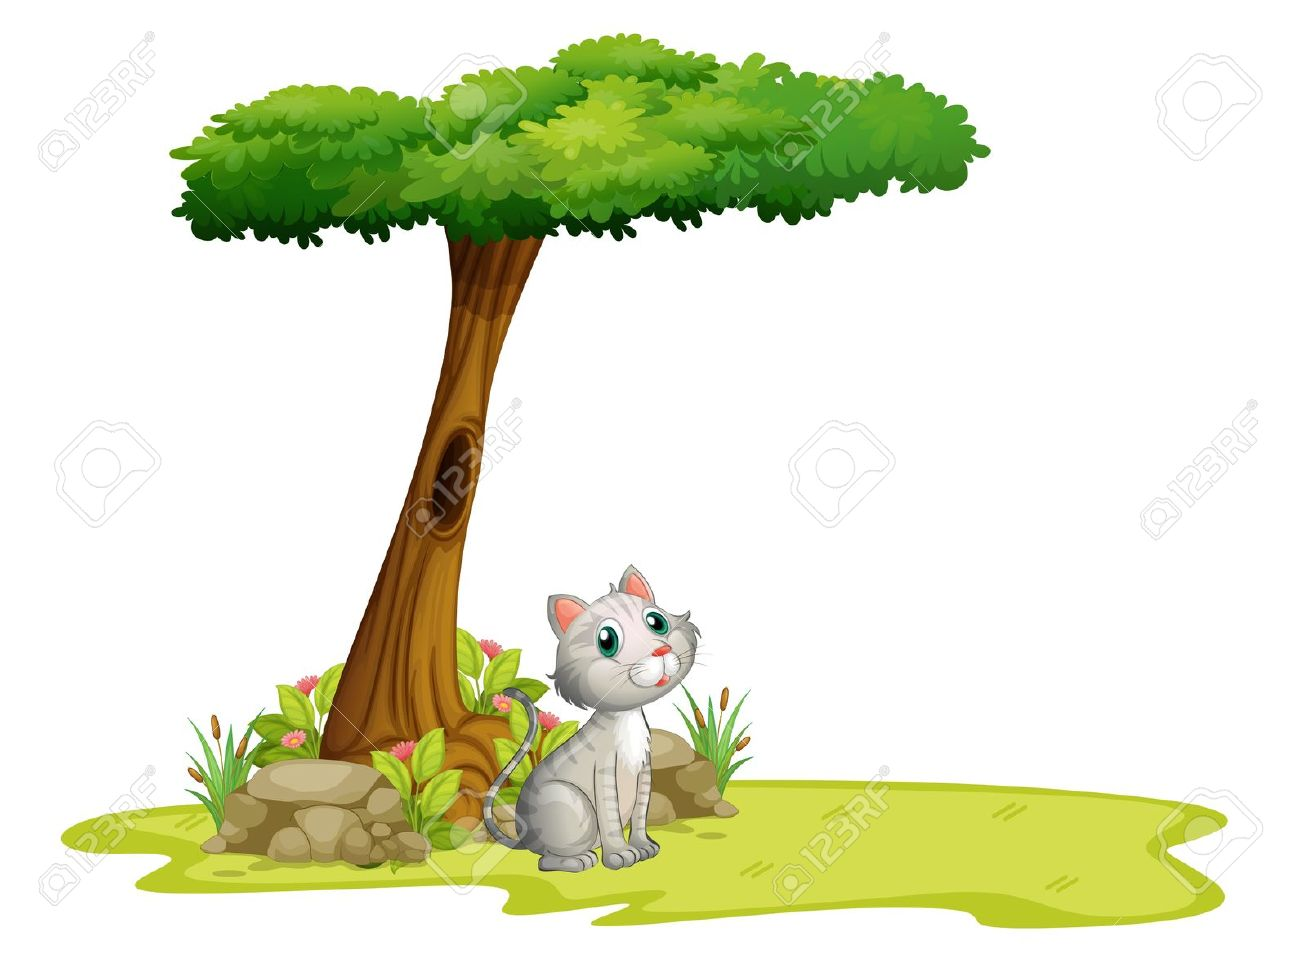 Illustration Of A Cat Under A Tree On A White Background Royalty.